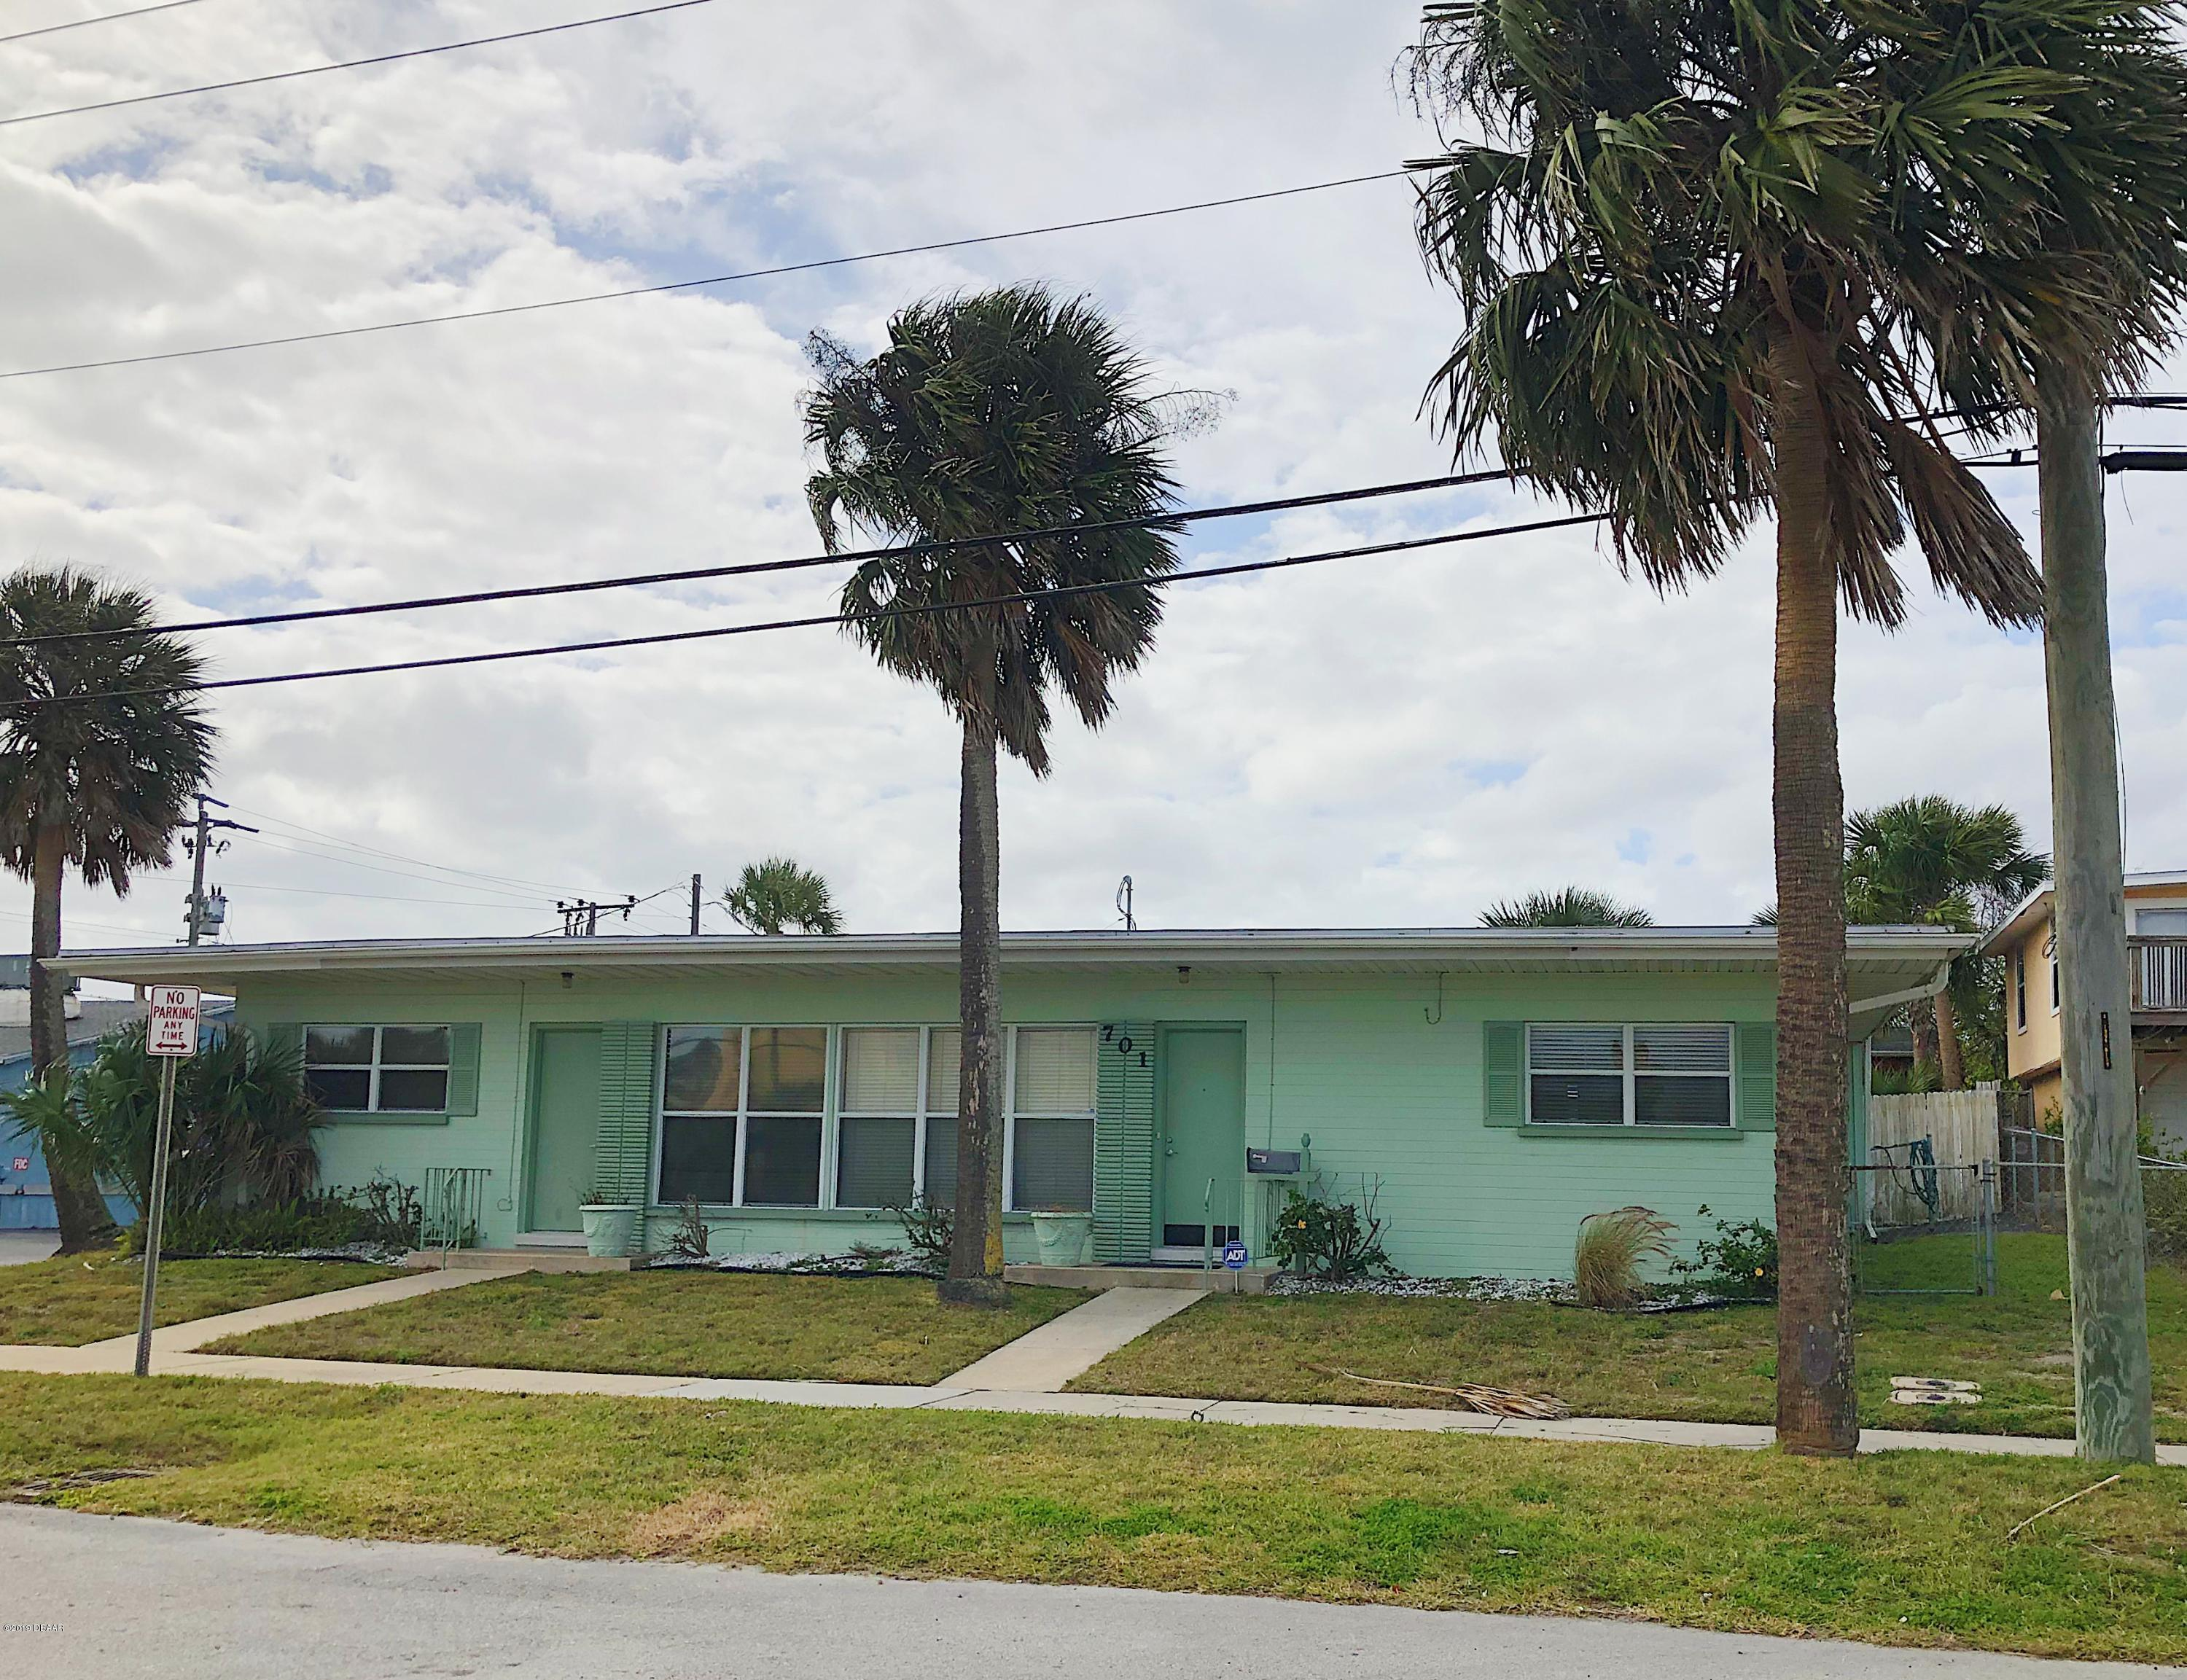 701 N Grandview Avenue, Daytona Beach Shores, Florida